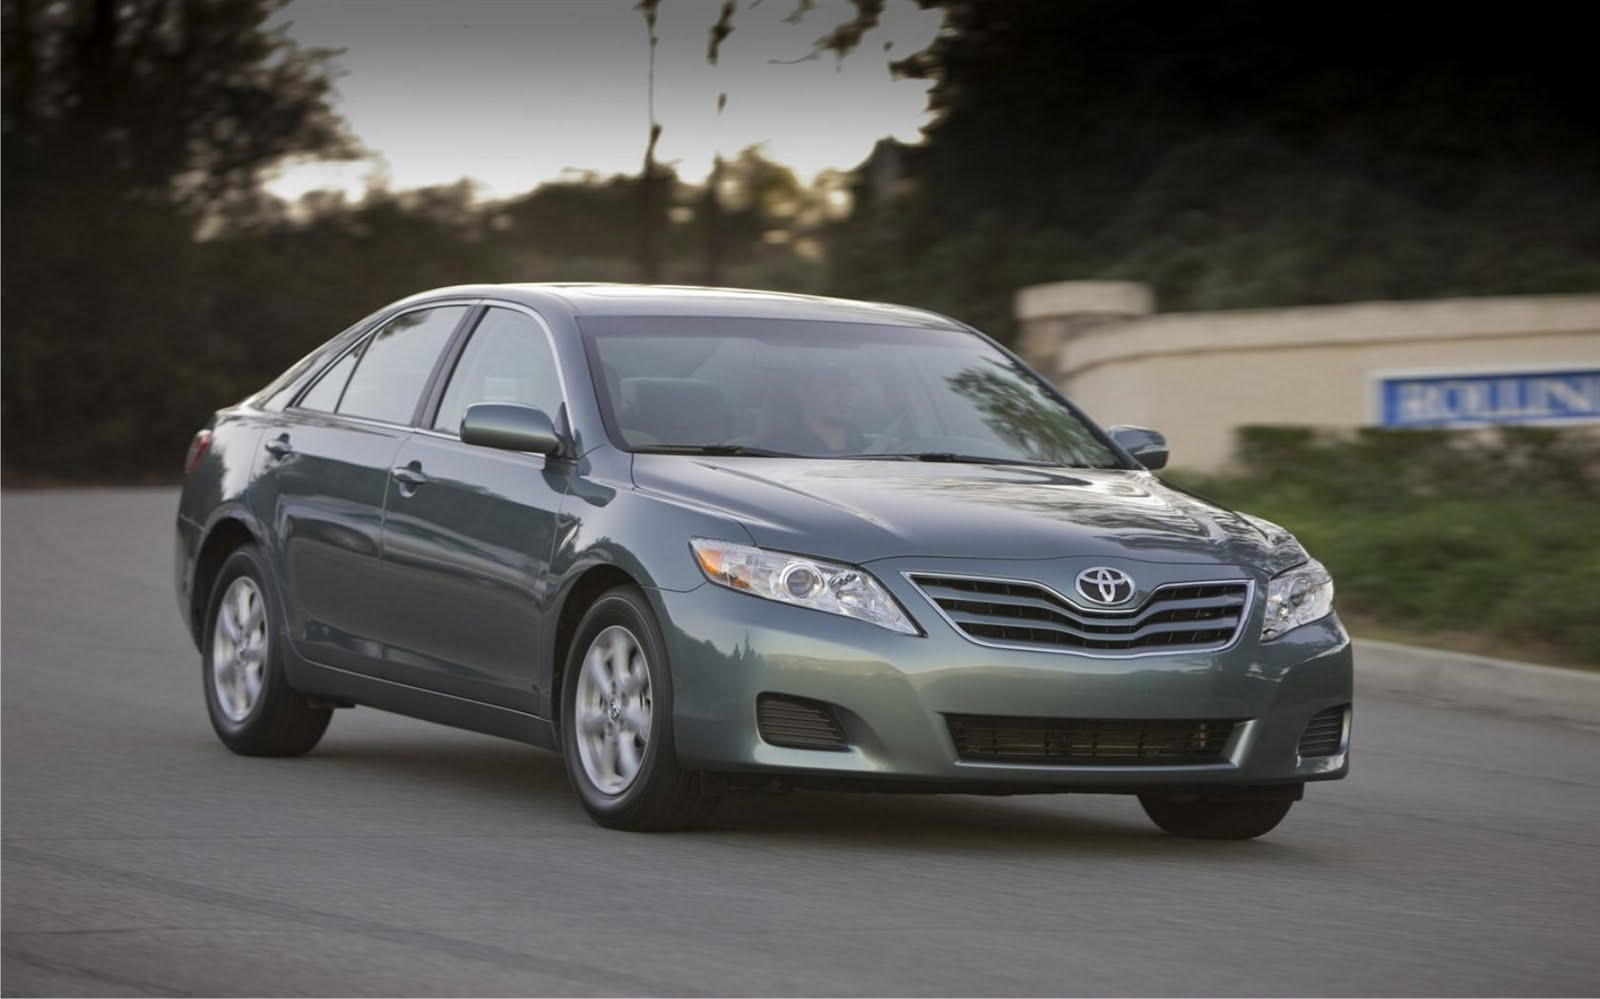 2011 toyota camry se xle with v6 review car sale report review. Black Bedroom Furniture Sets. Home Design Ideas